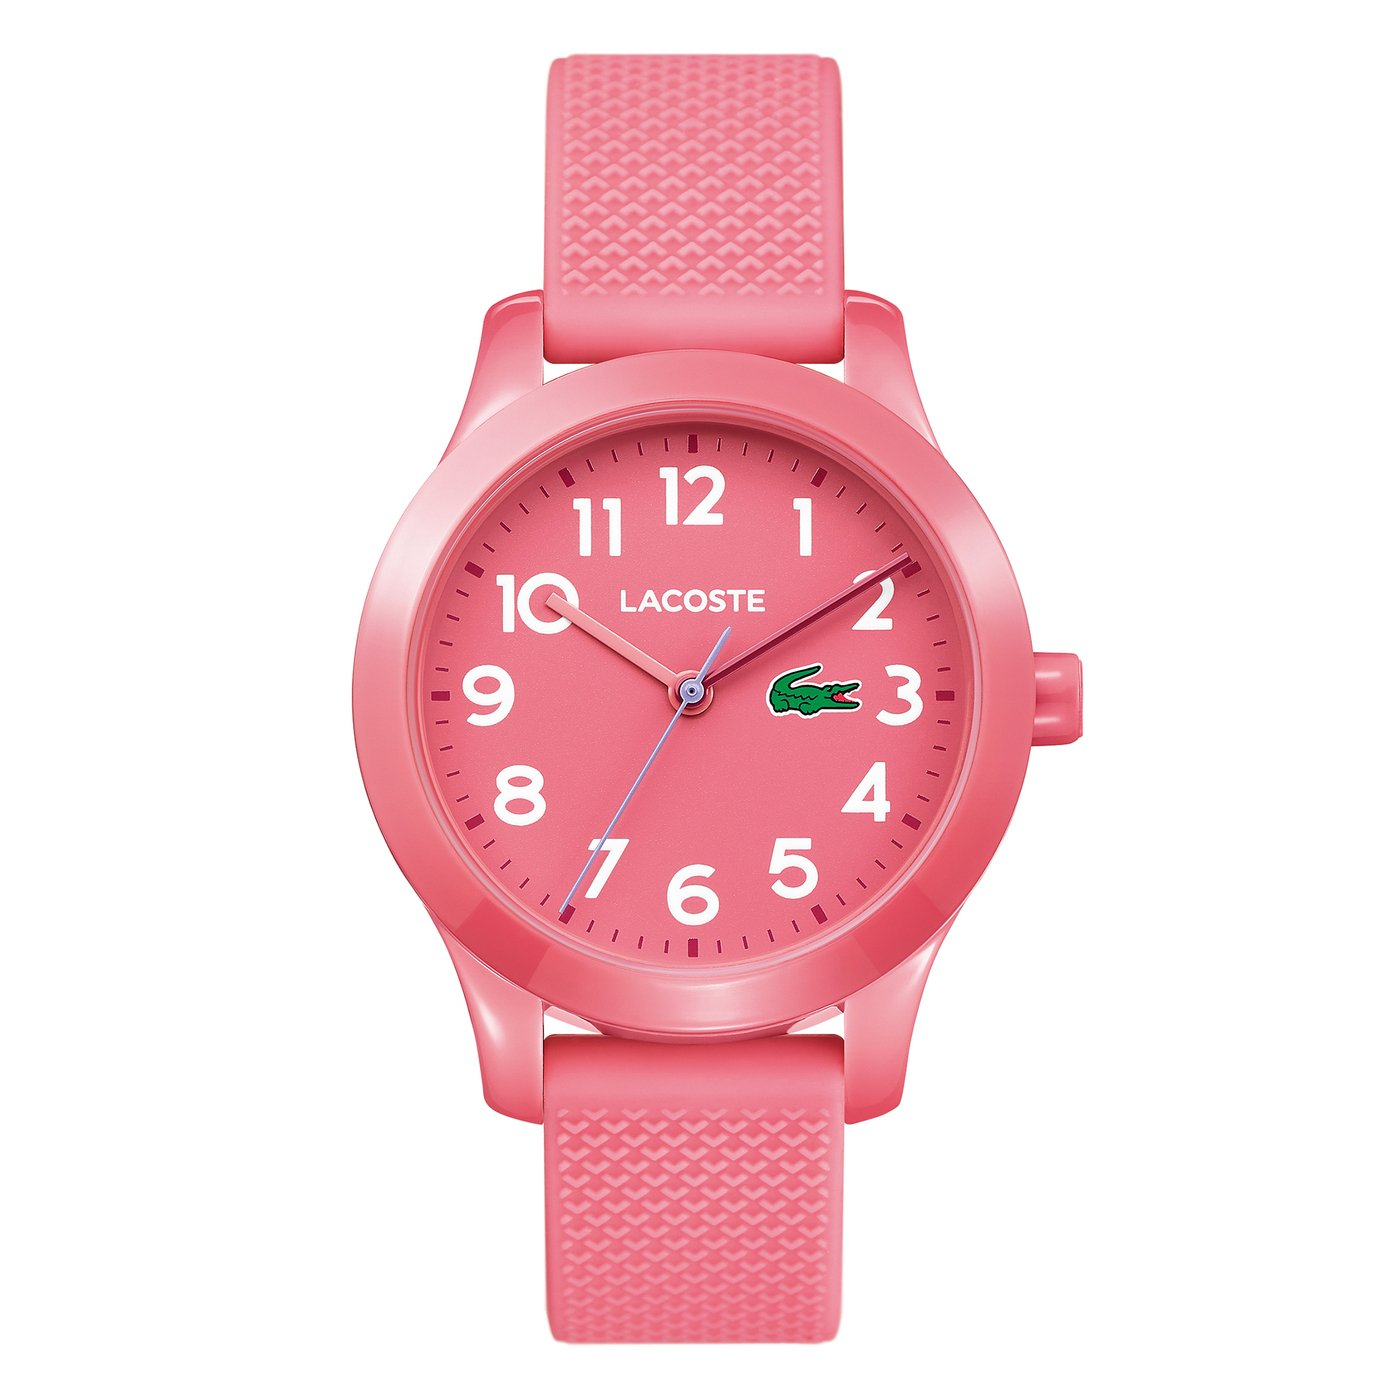 Lacoste  Pink Silicone Strap Watch